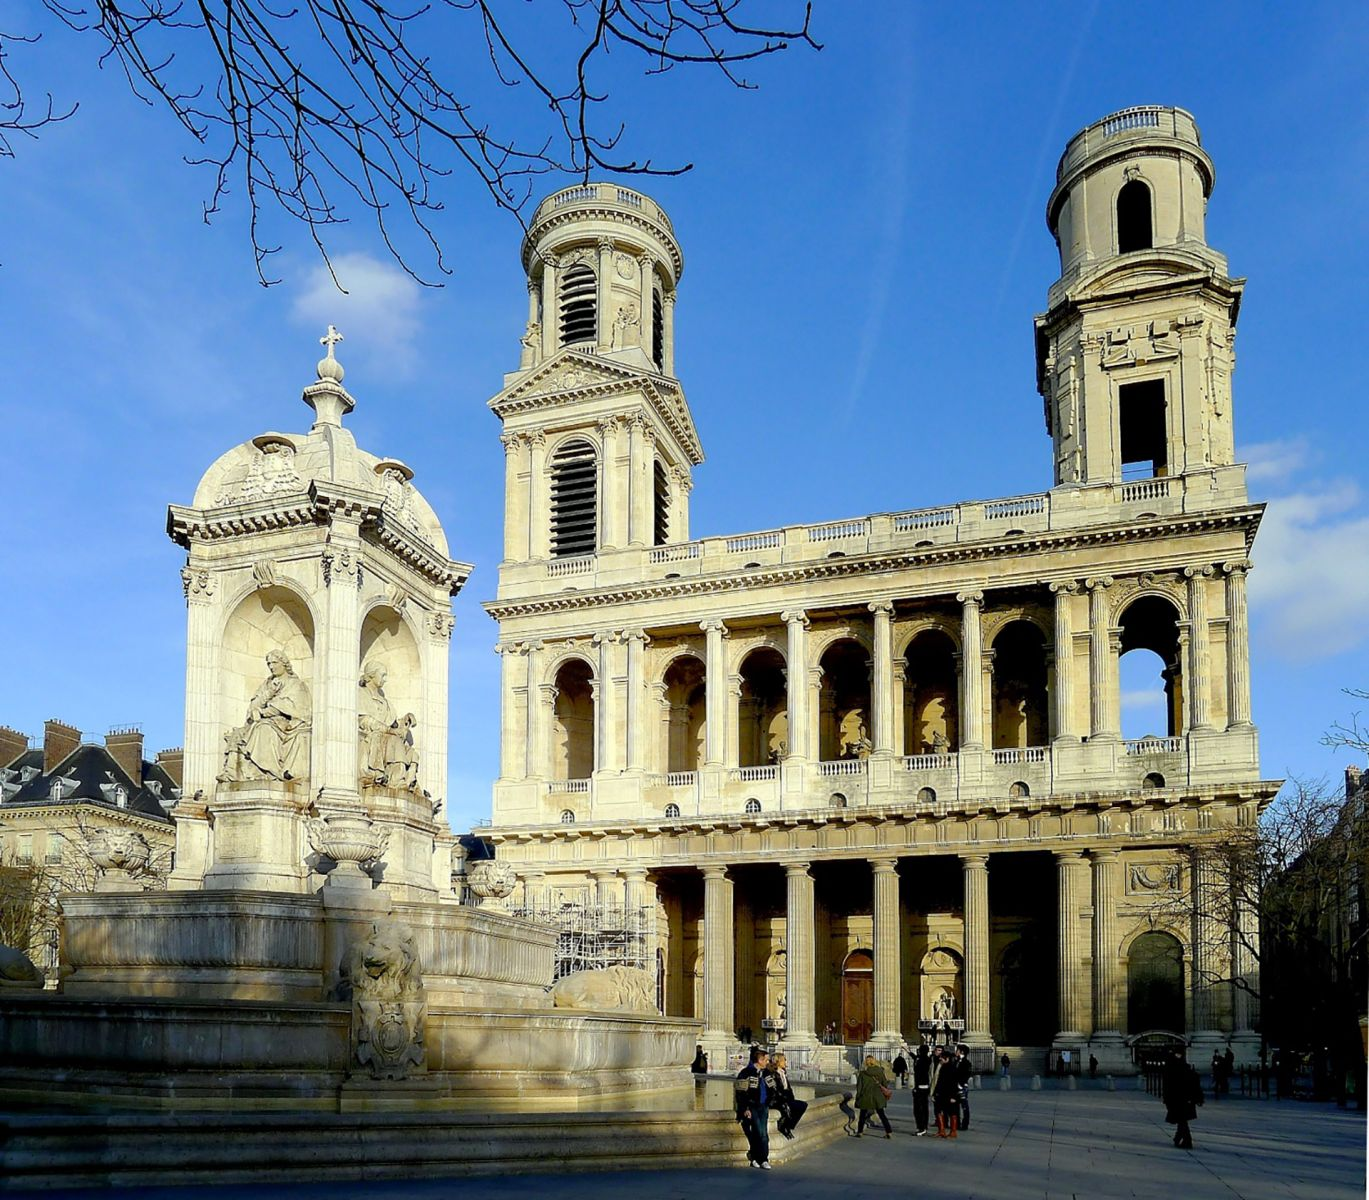 549/Photos/Paris/SaintSulpice-optimisee.jpg